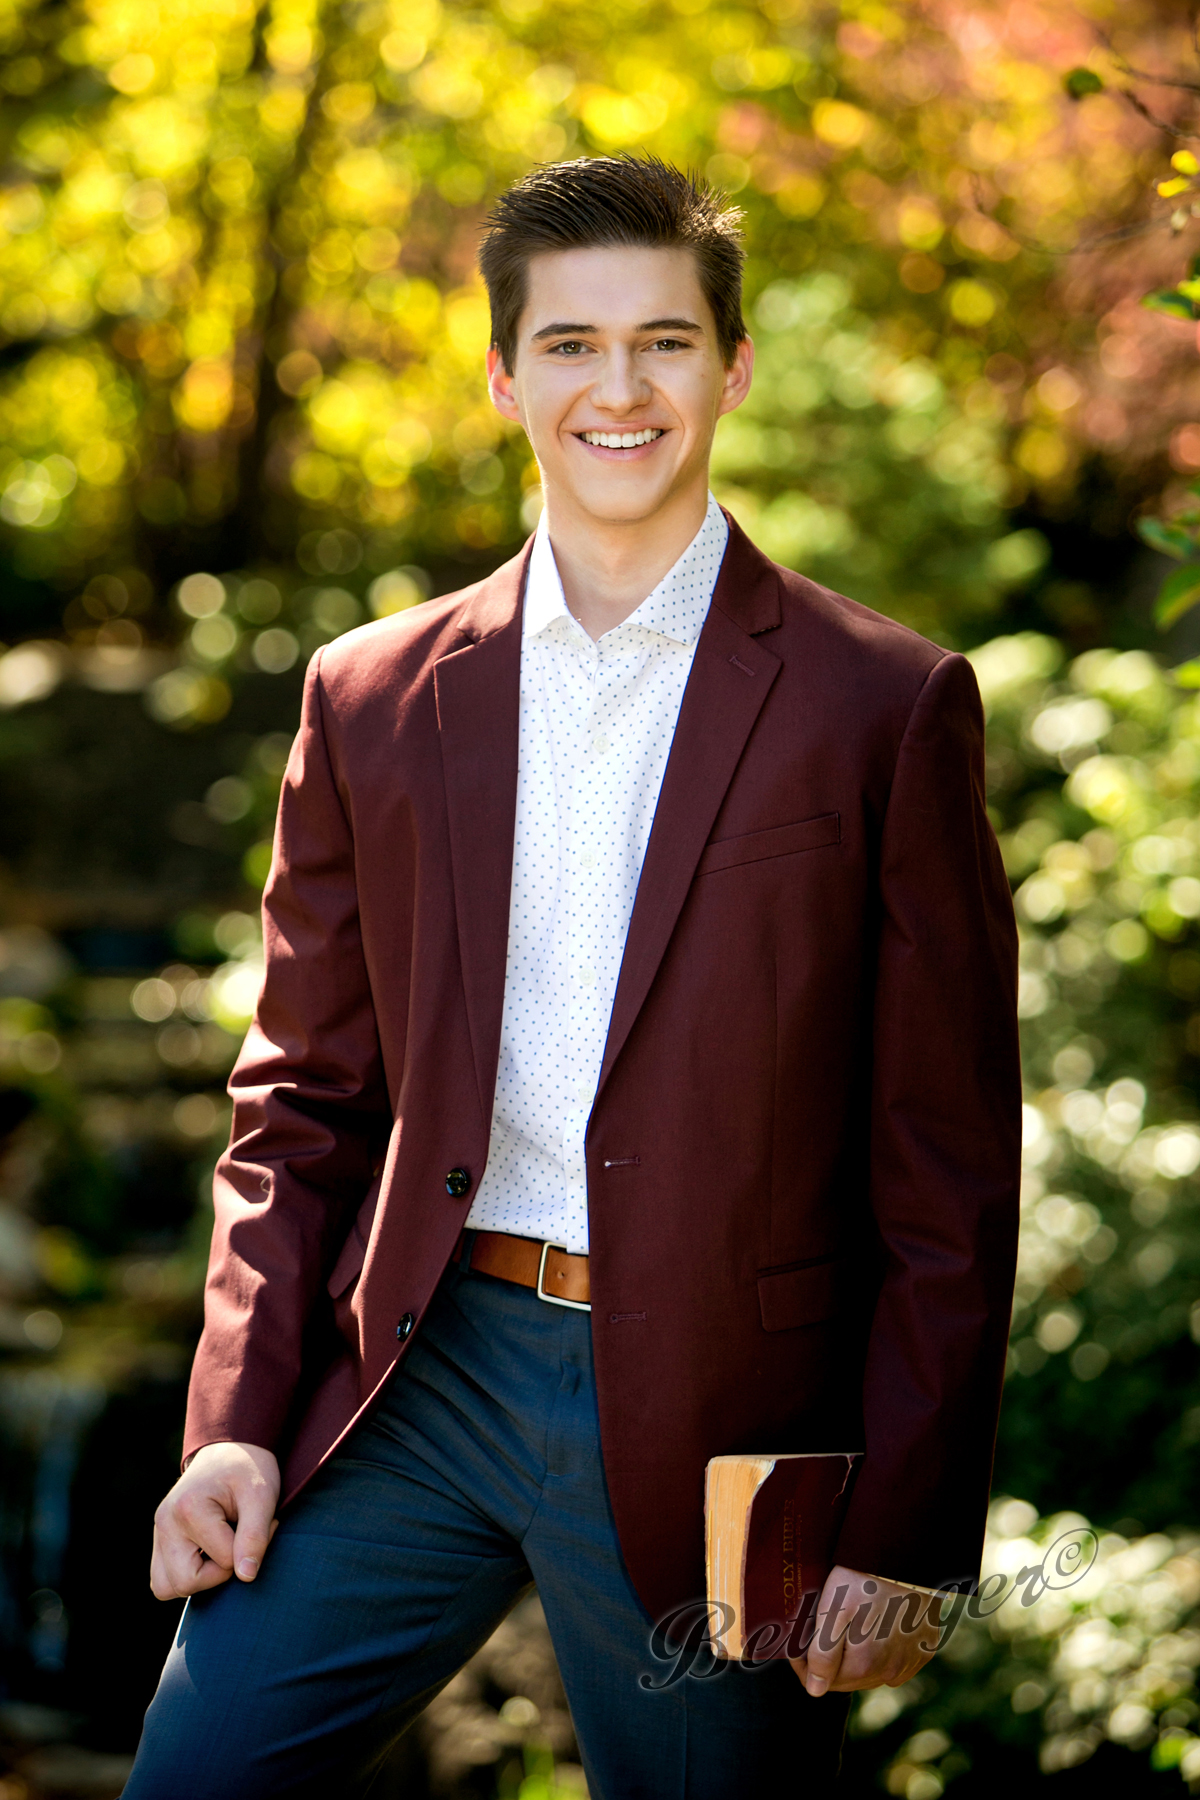 - Arthur B. Neyland III has had many achievements with making Honor Roll all 4 years, Receiving his Academic Letter 3 years and 7 Department Awards. He Volunteers for many organizations and has done website design for Acts 29 USA with audio editing from Thrive Sunday Night.